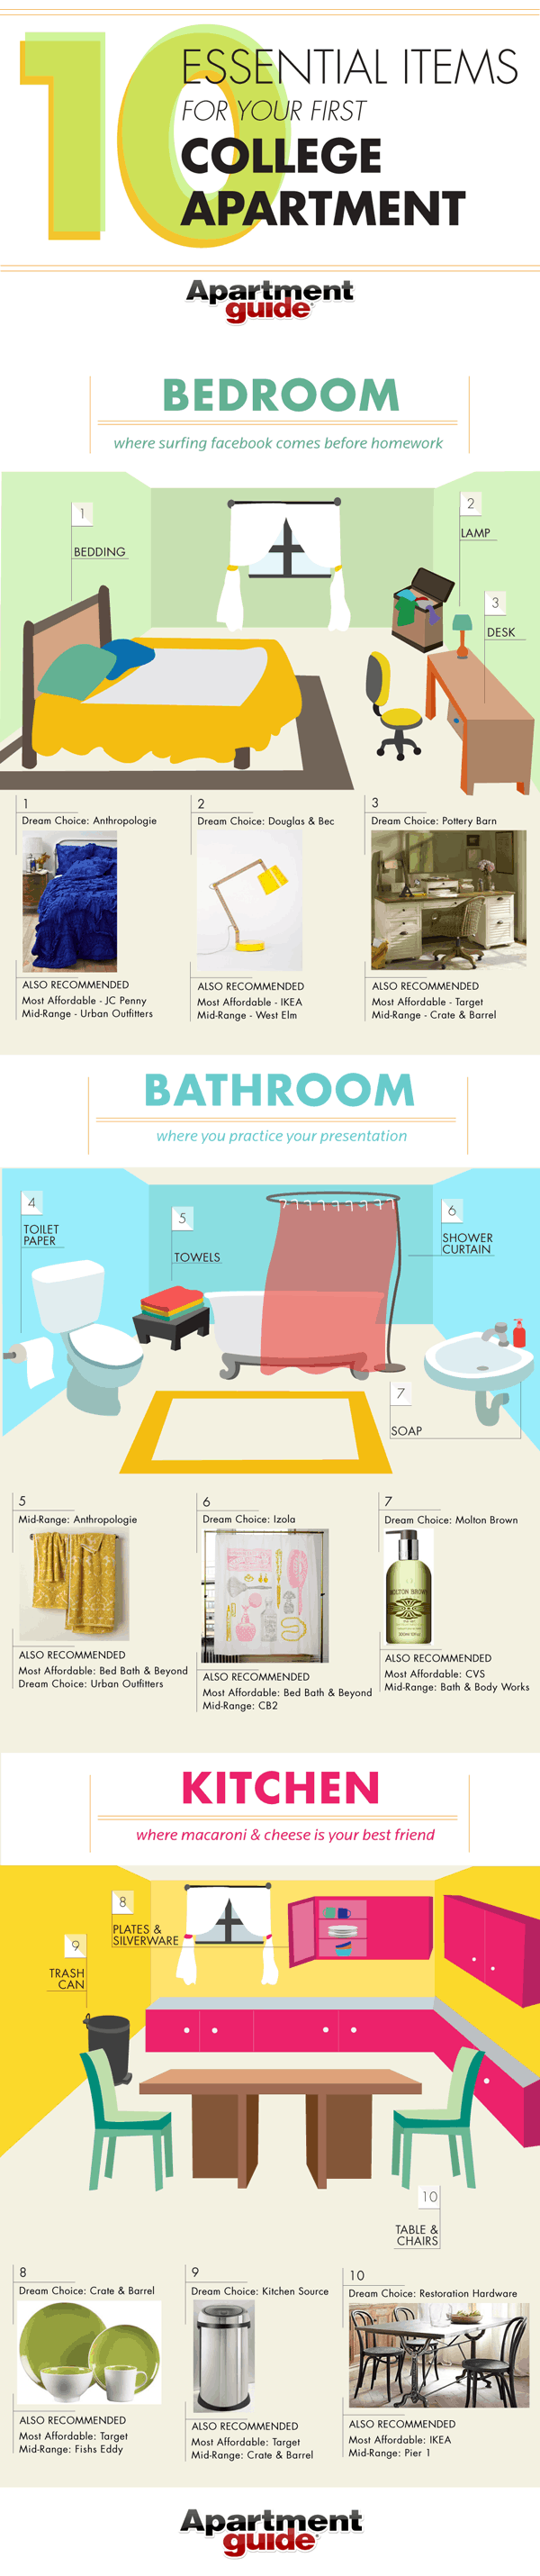 college apartment essentials checklist